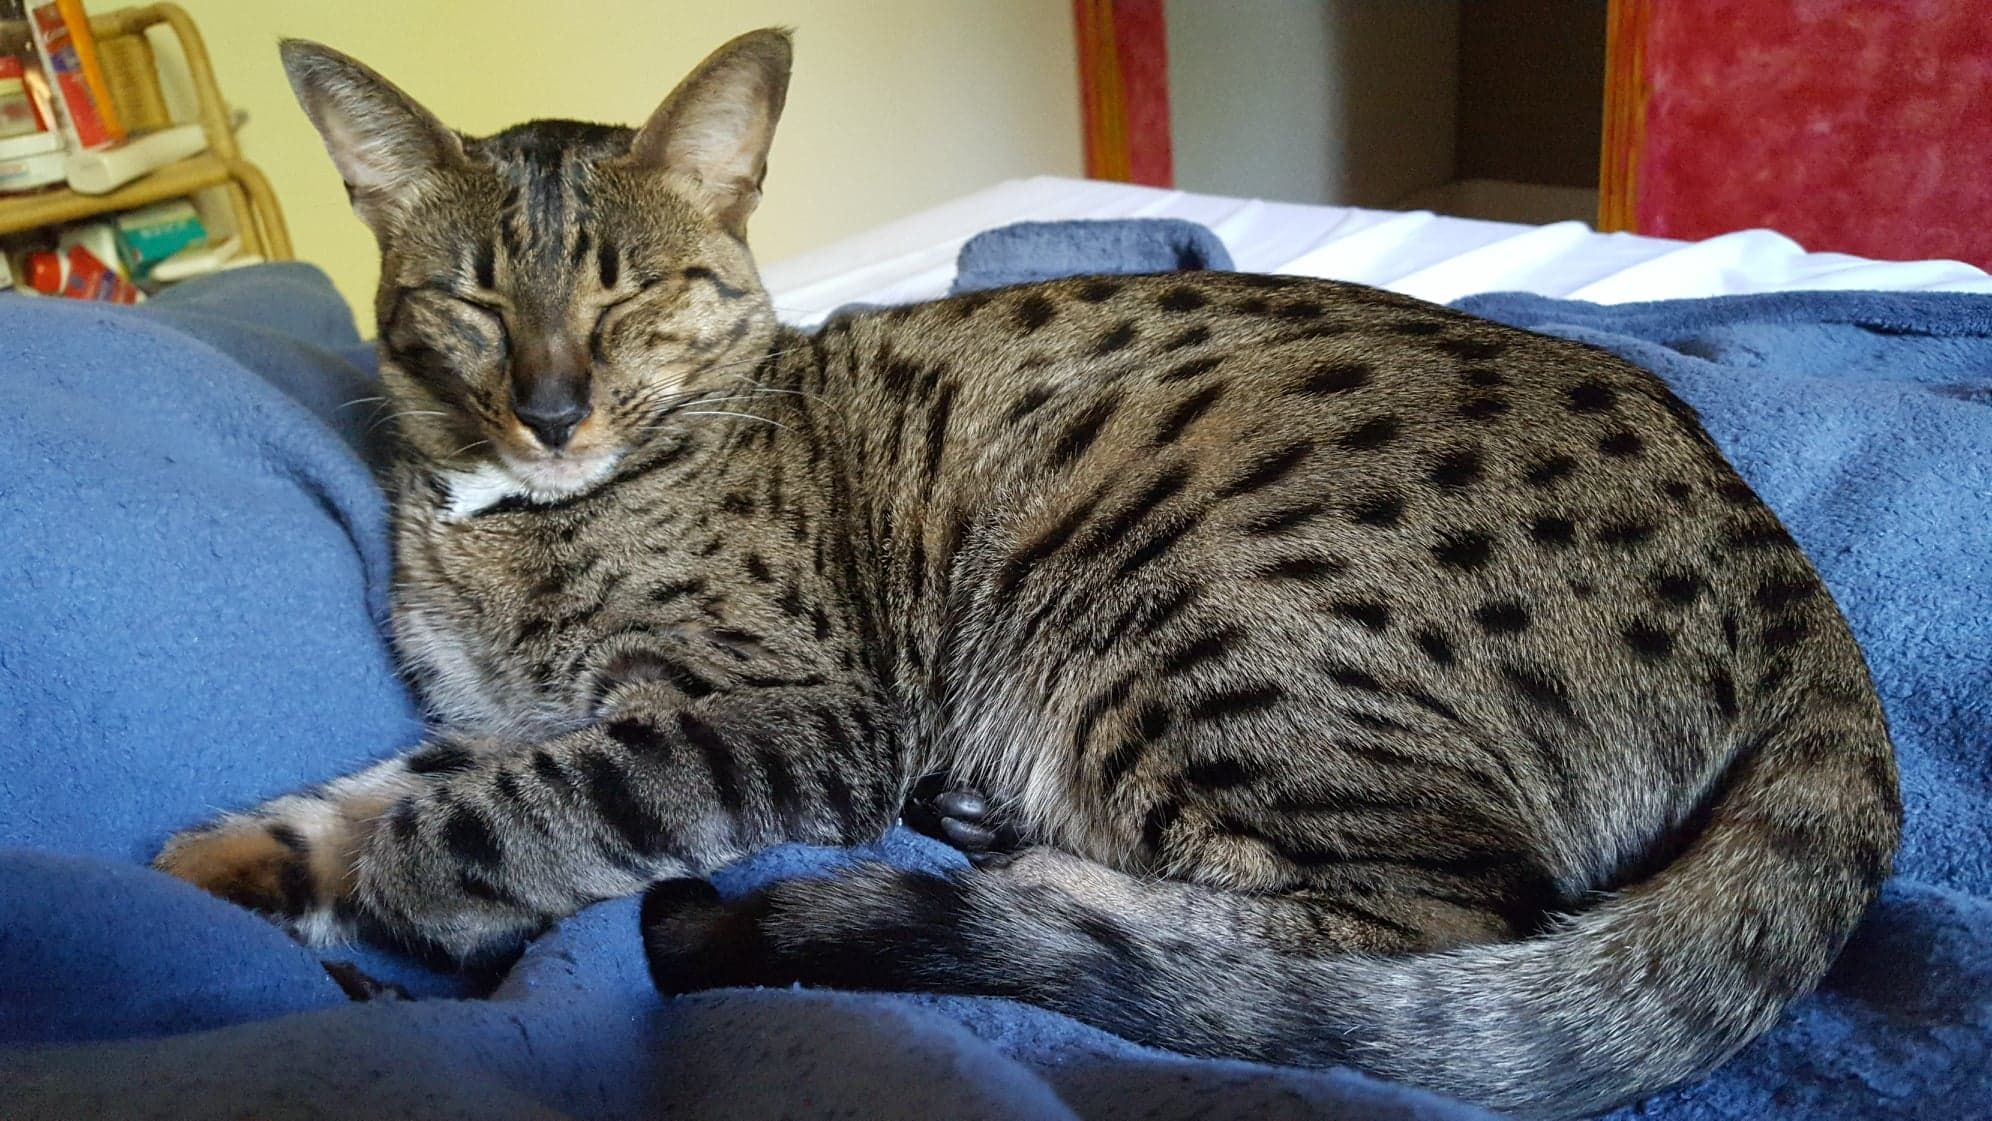 Nalaa Our F7 Sbt Savannah Cat Spending Time In The Morning